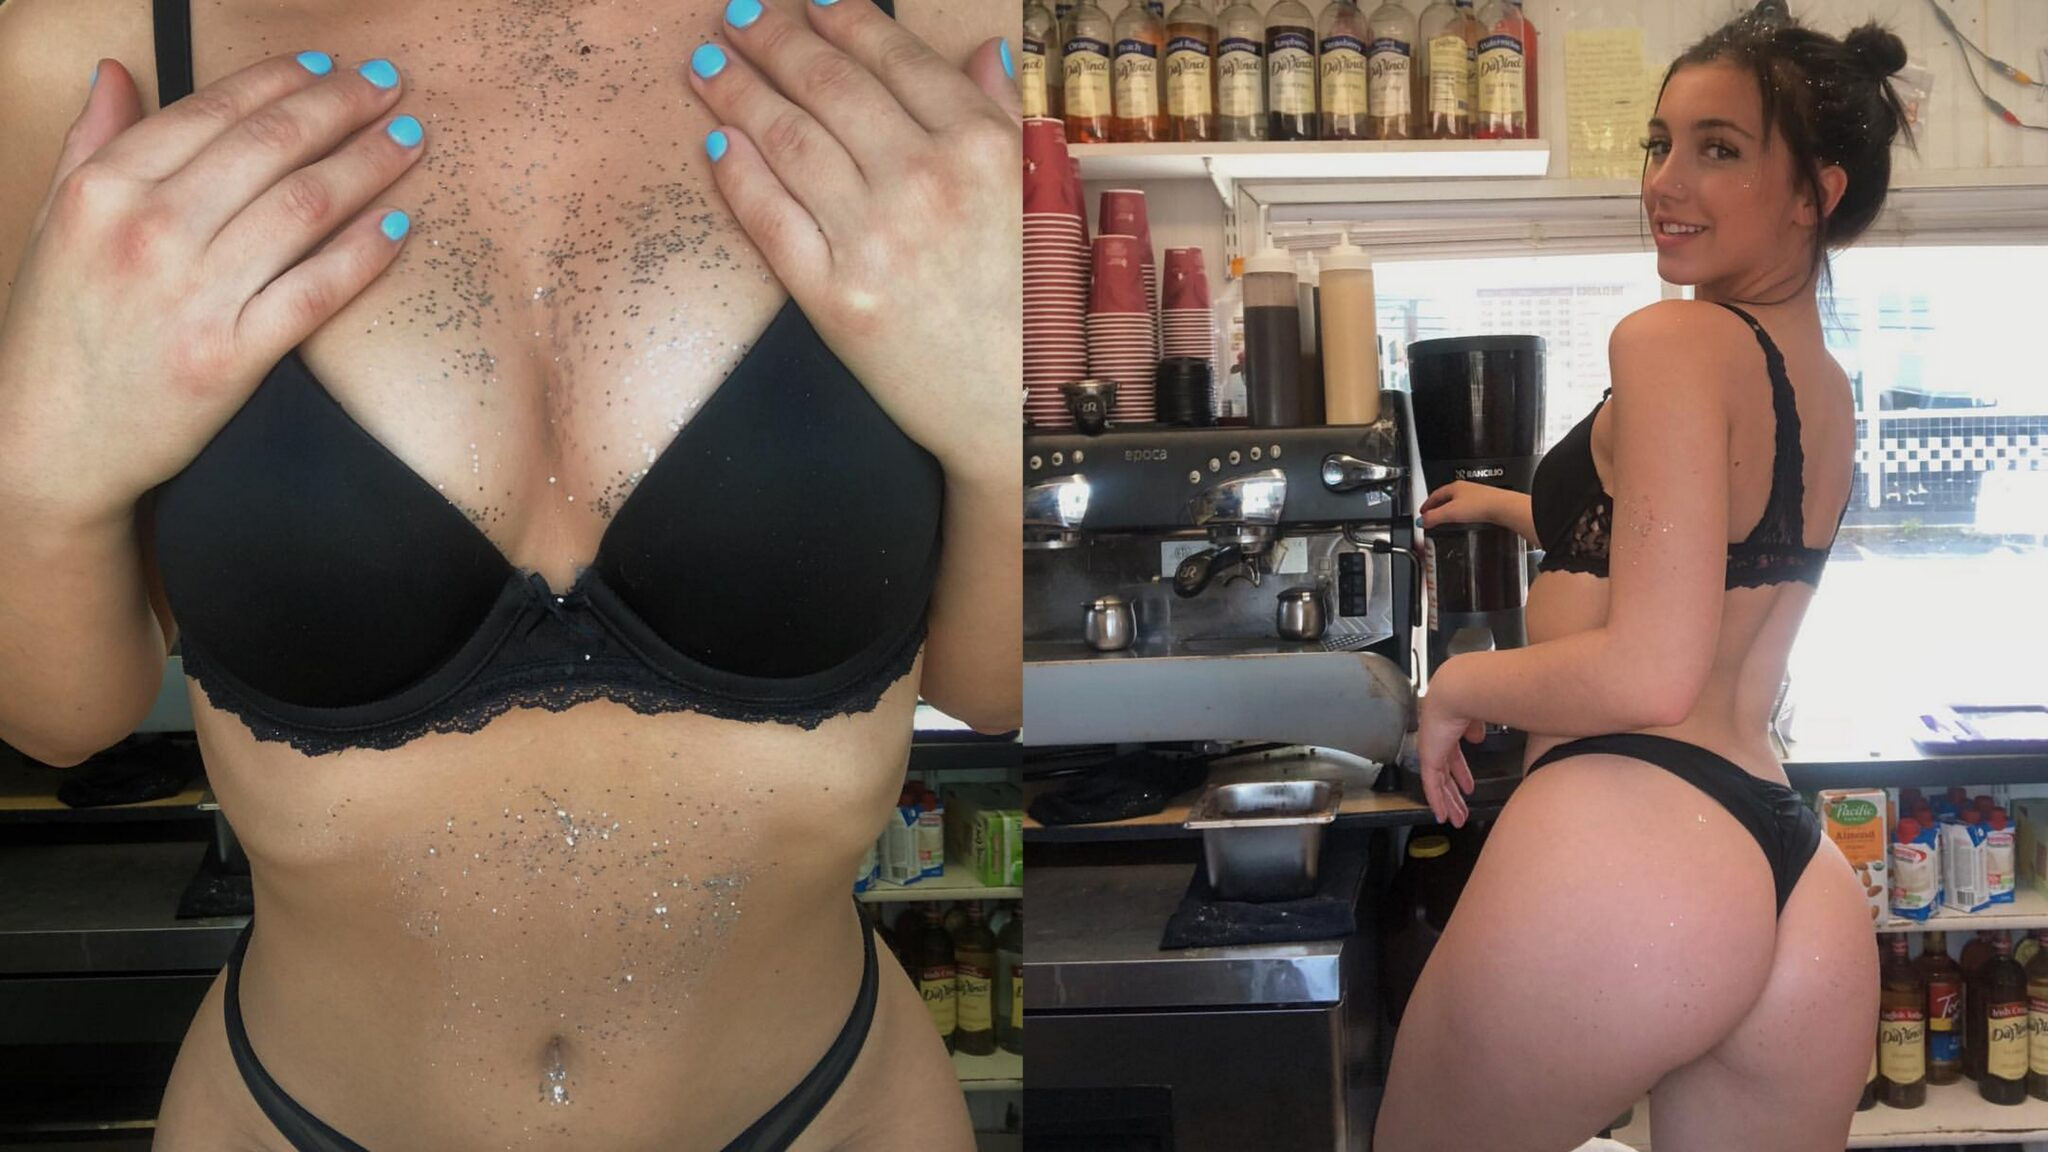 baristaalix Onlyfans Leaked Nude Photos fappenings.com 40